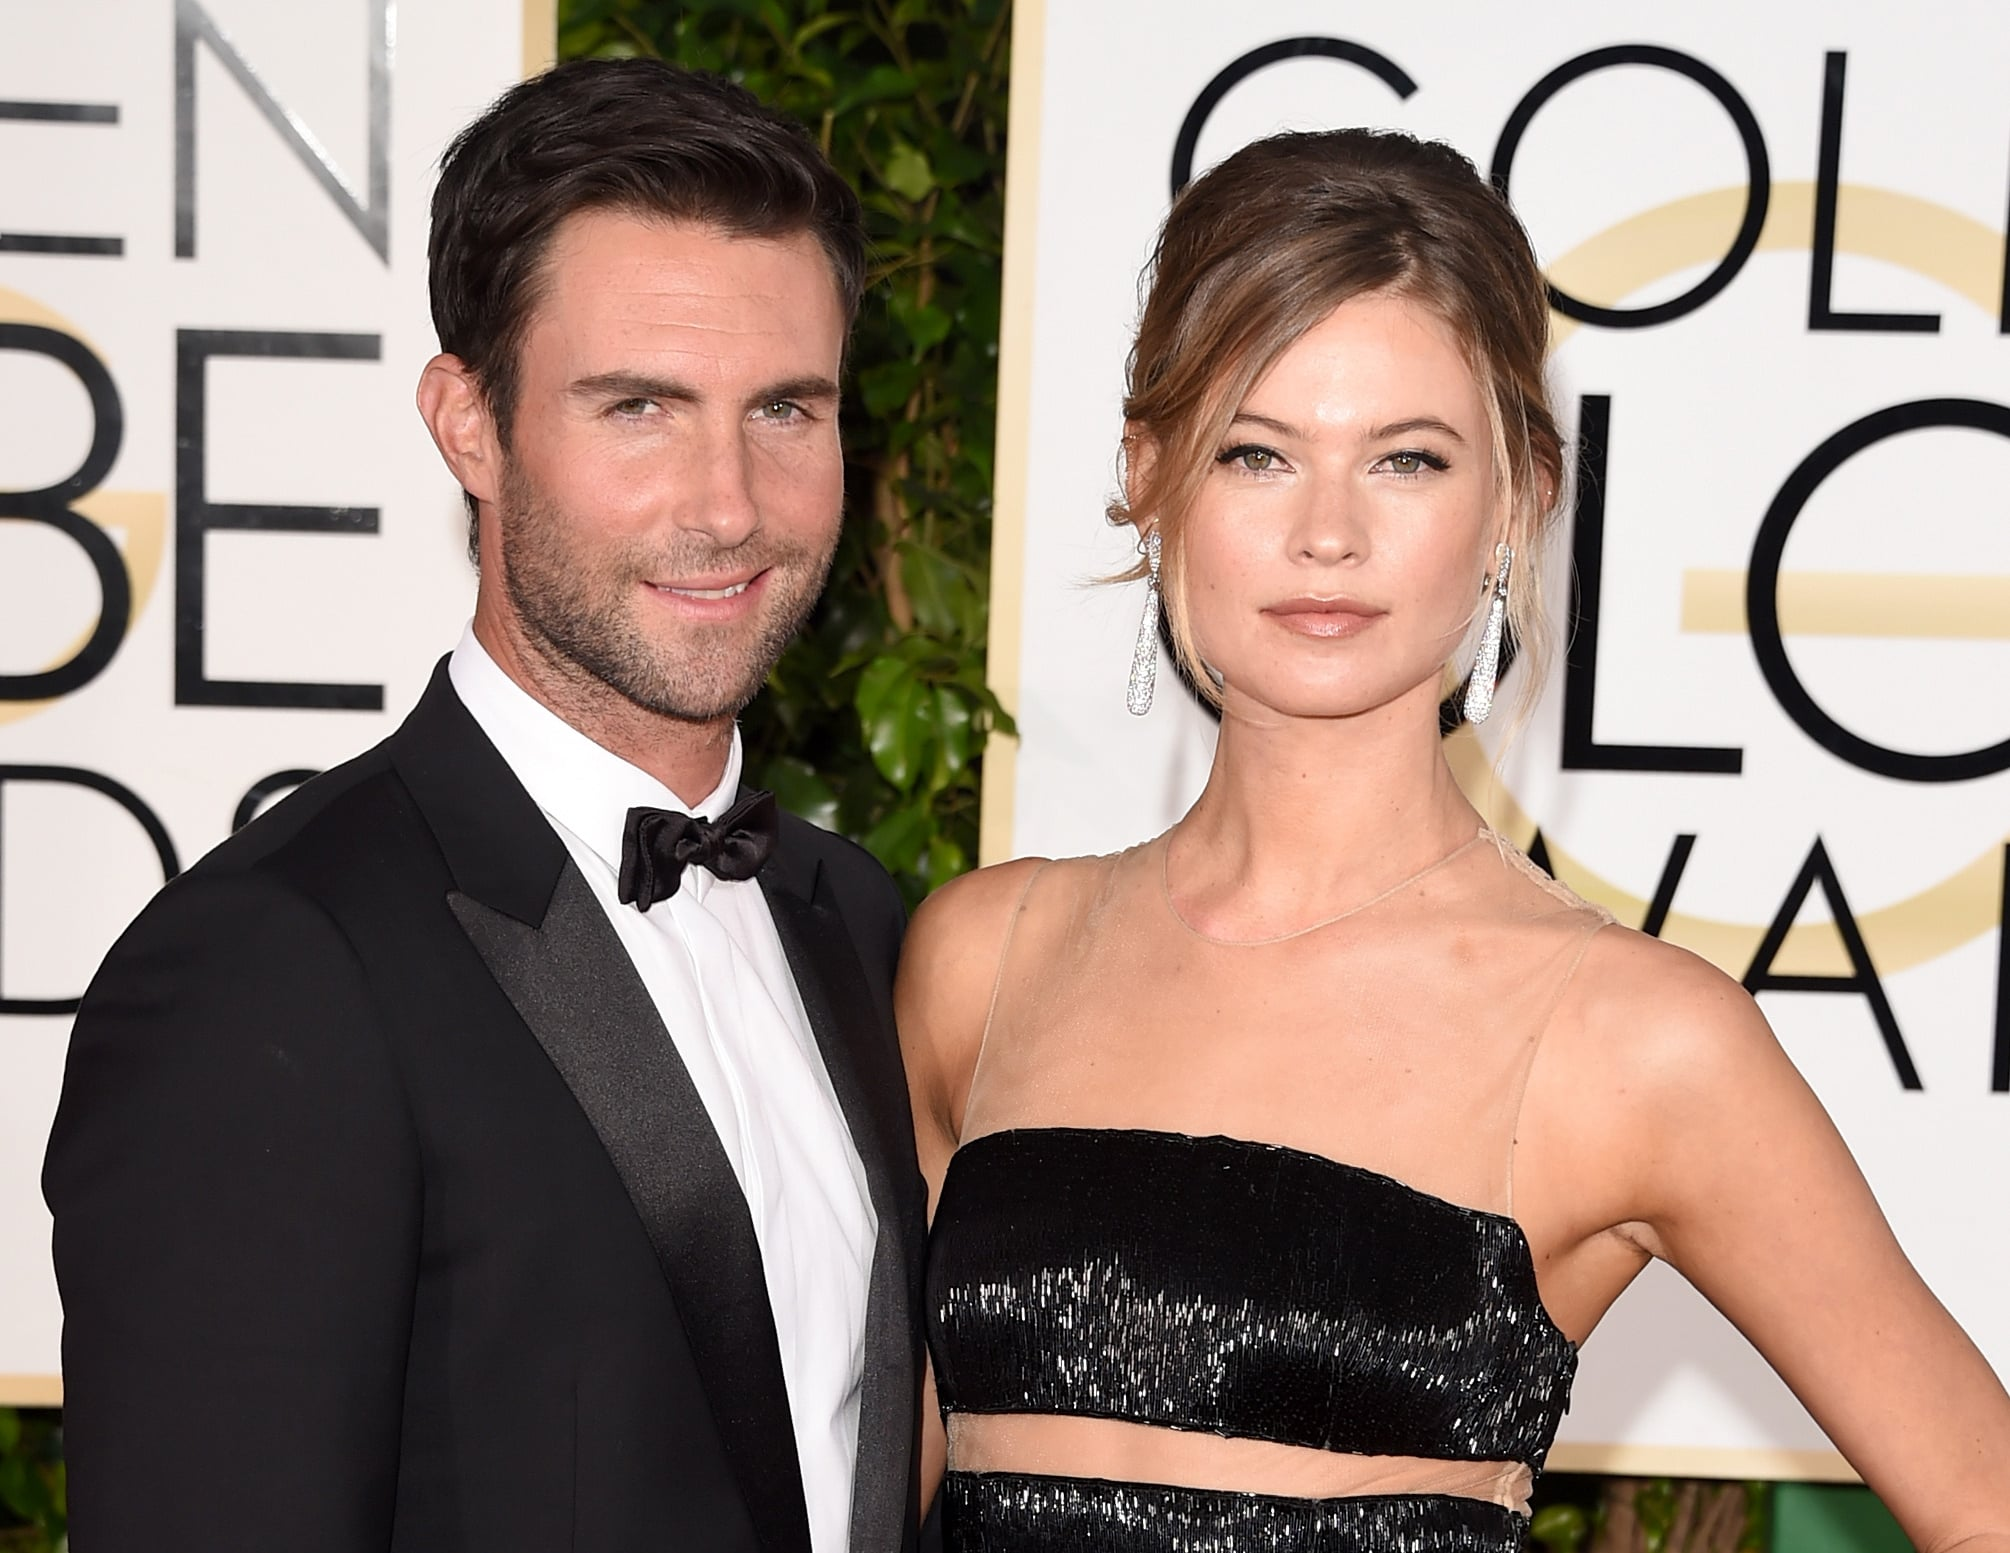 Adam Levine and Behati Prinsloo have welcomed their second child